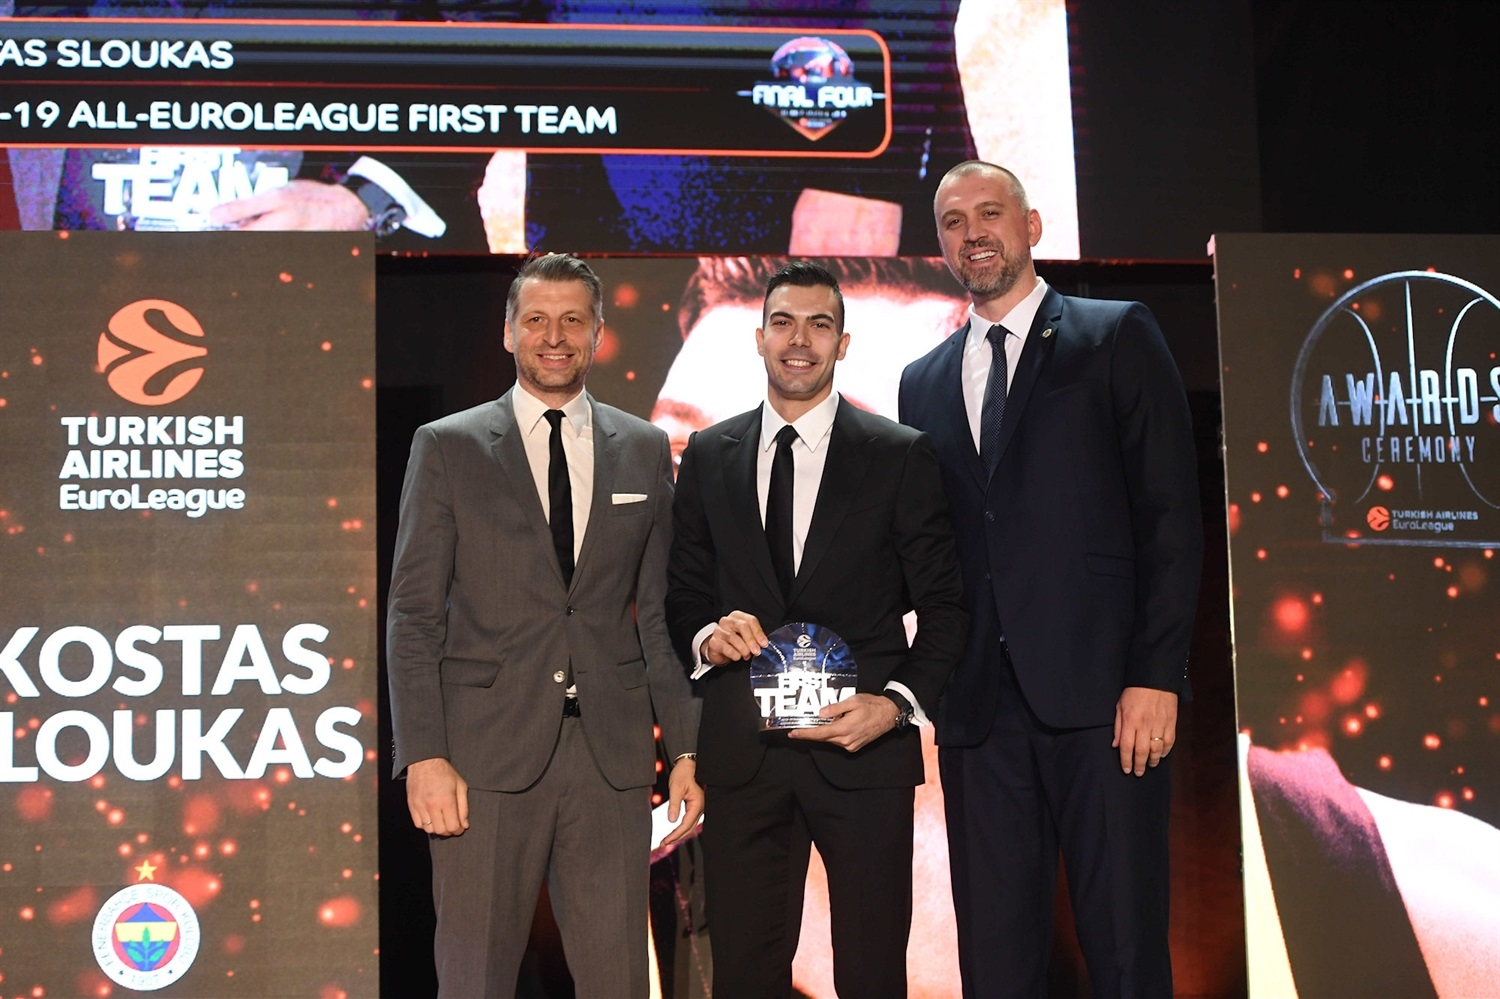 Kostas Sloukas, First Team - 2018-19 Awards Ceremony - Final Four Vitoria-Gasteiz 2019 - EB18